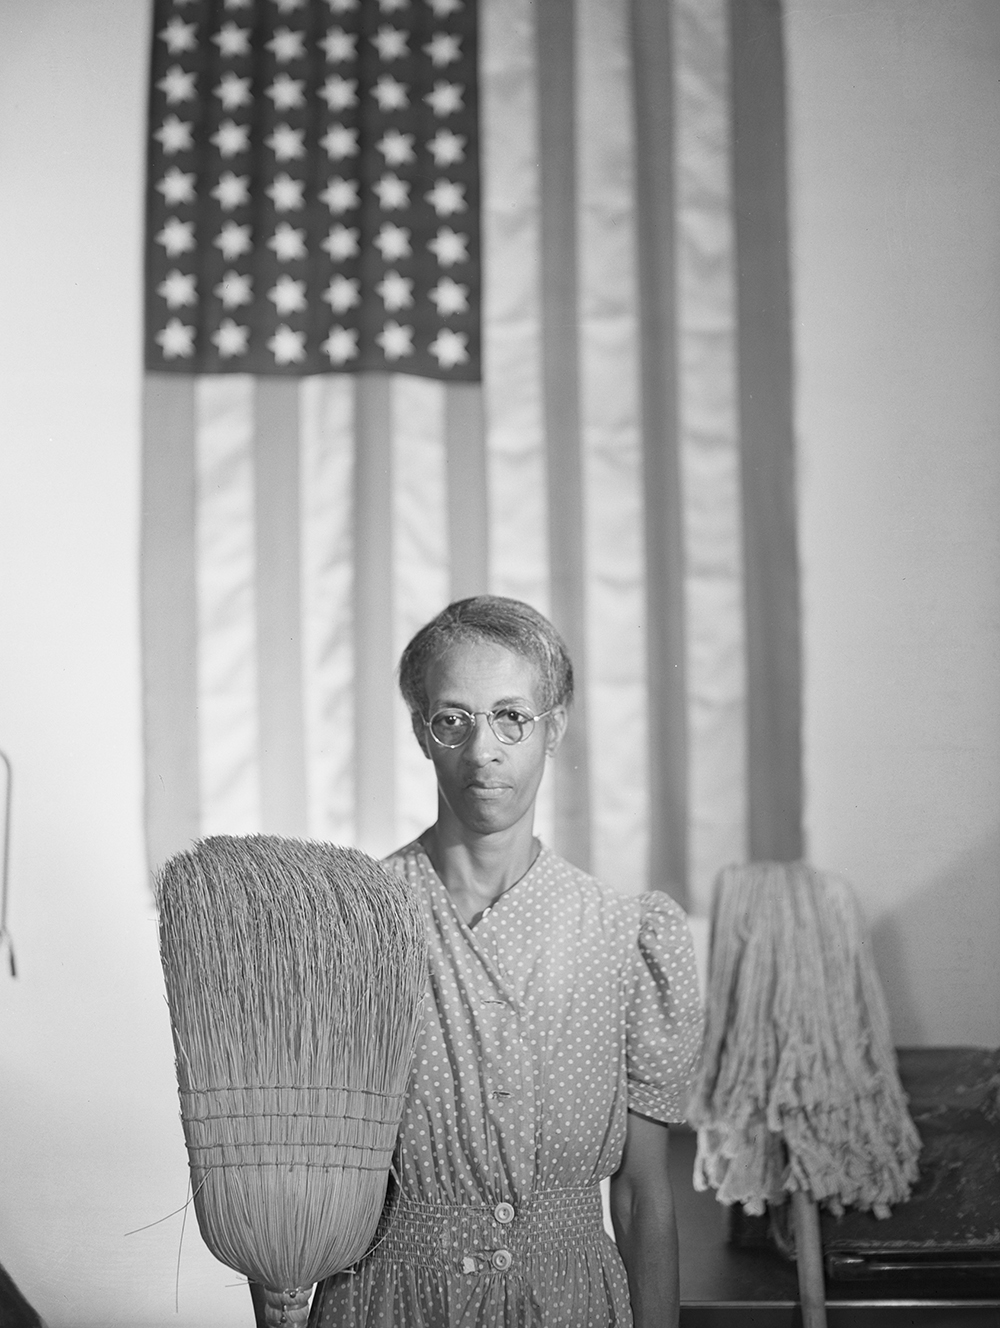 American Gothic, by Gordon Parks, 1942. Library of Congress, Prints and Photographs Division.